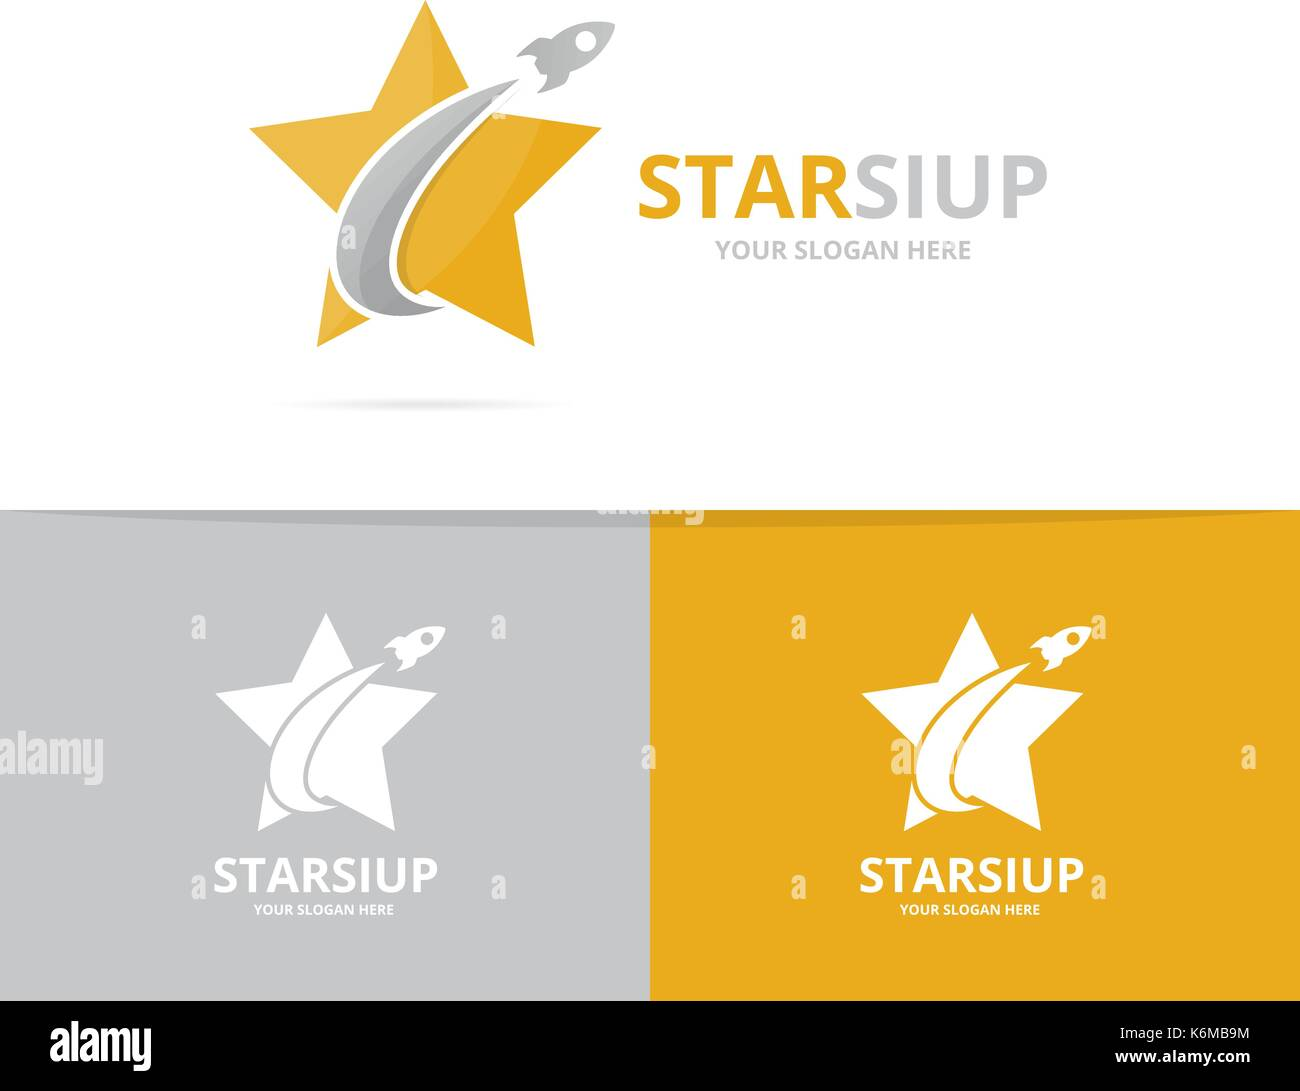 Vector star and rocket logo combination. Leader and airplane symbol or icon. Unique flight and team logotype design template. - Stock Vector